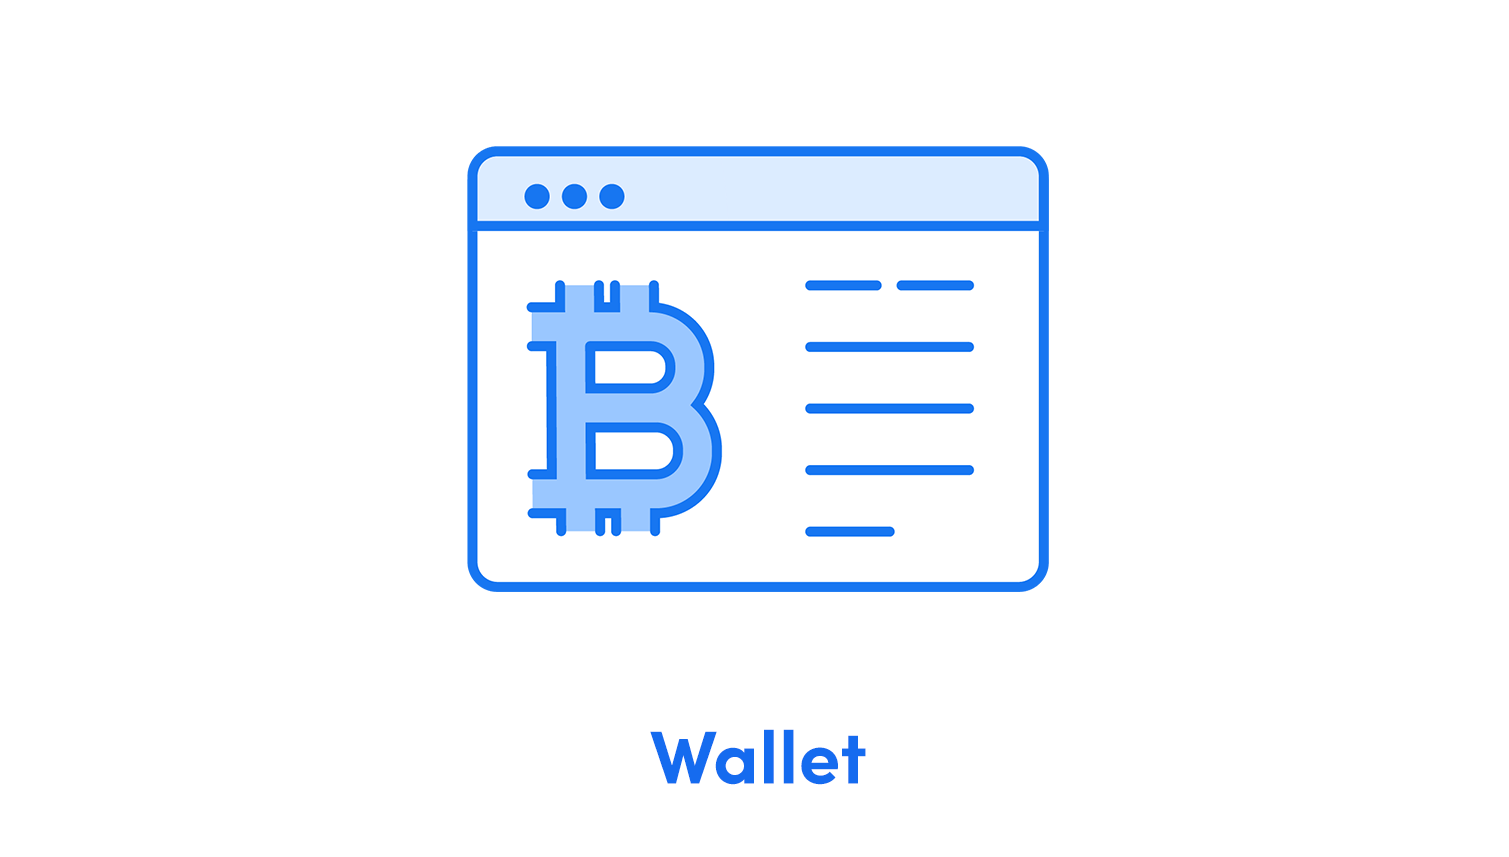 infographic_ecosystem_source_wallet.png